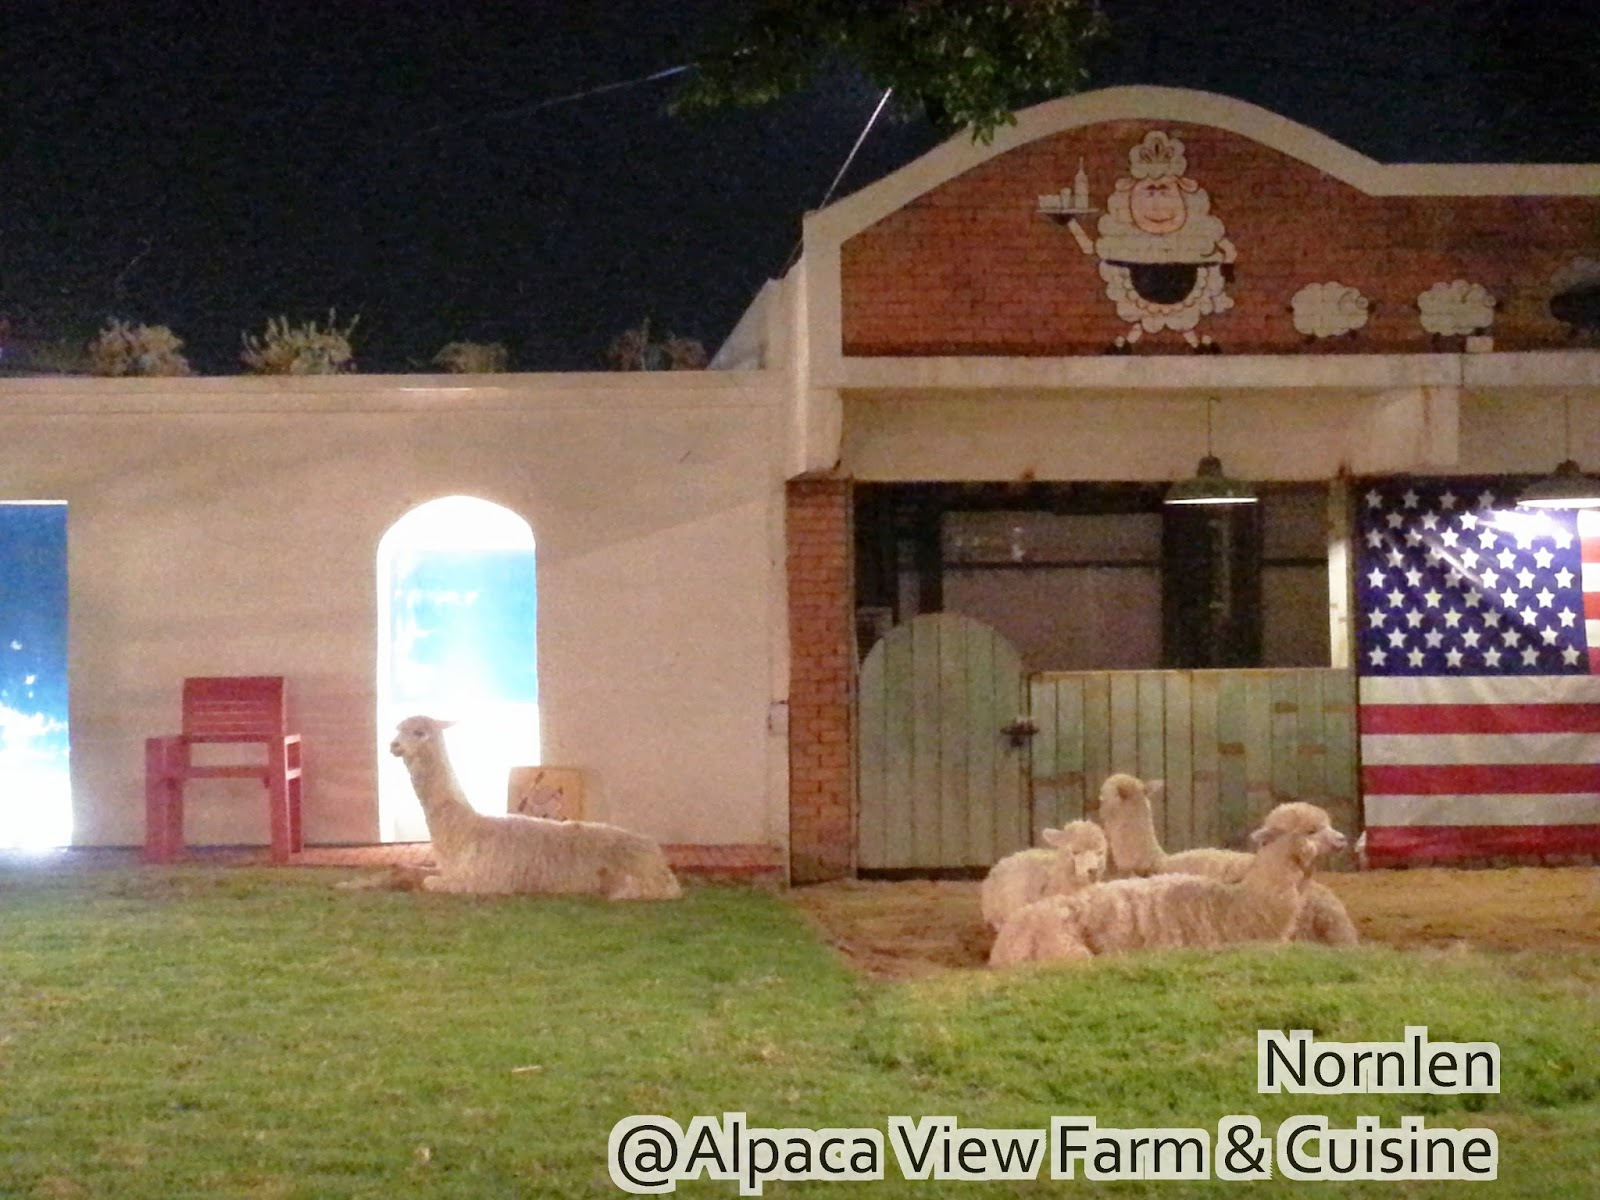 Alpaca view farm cuisine for Alpacas view farm cuisine